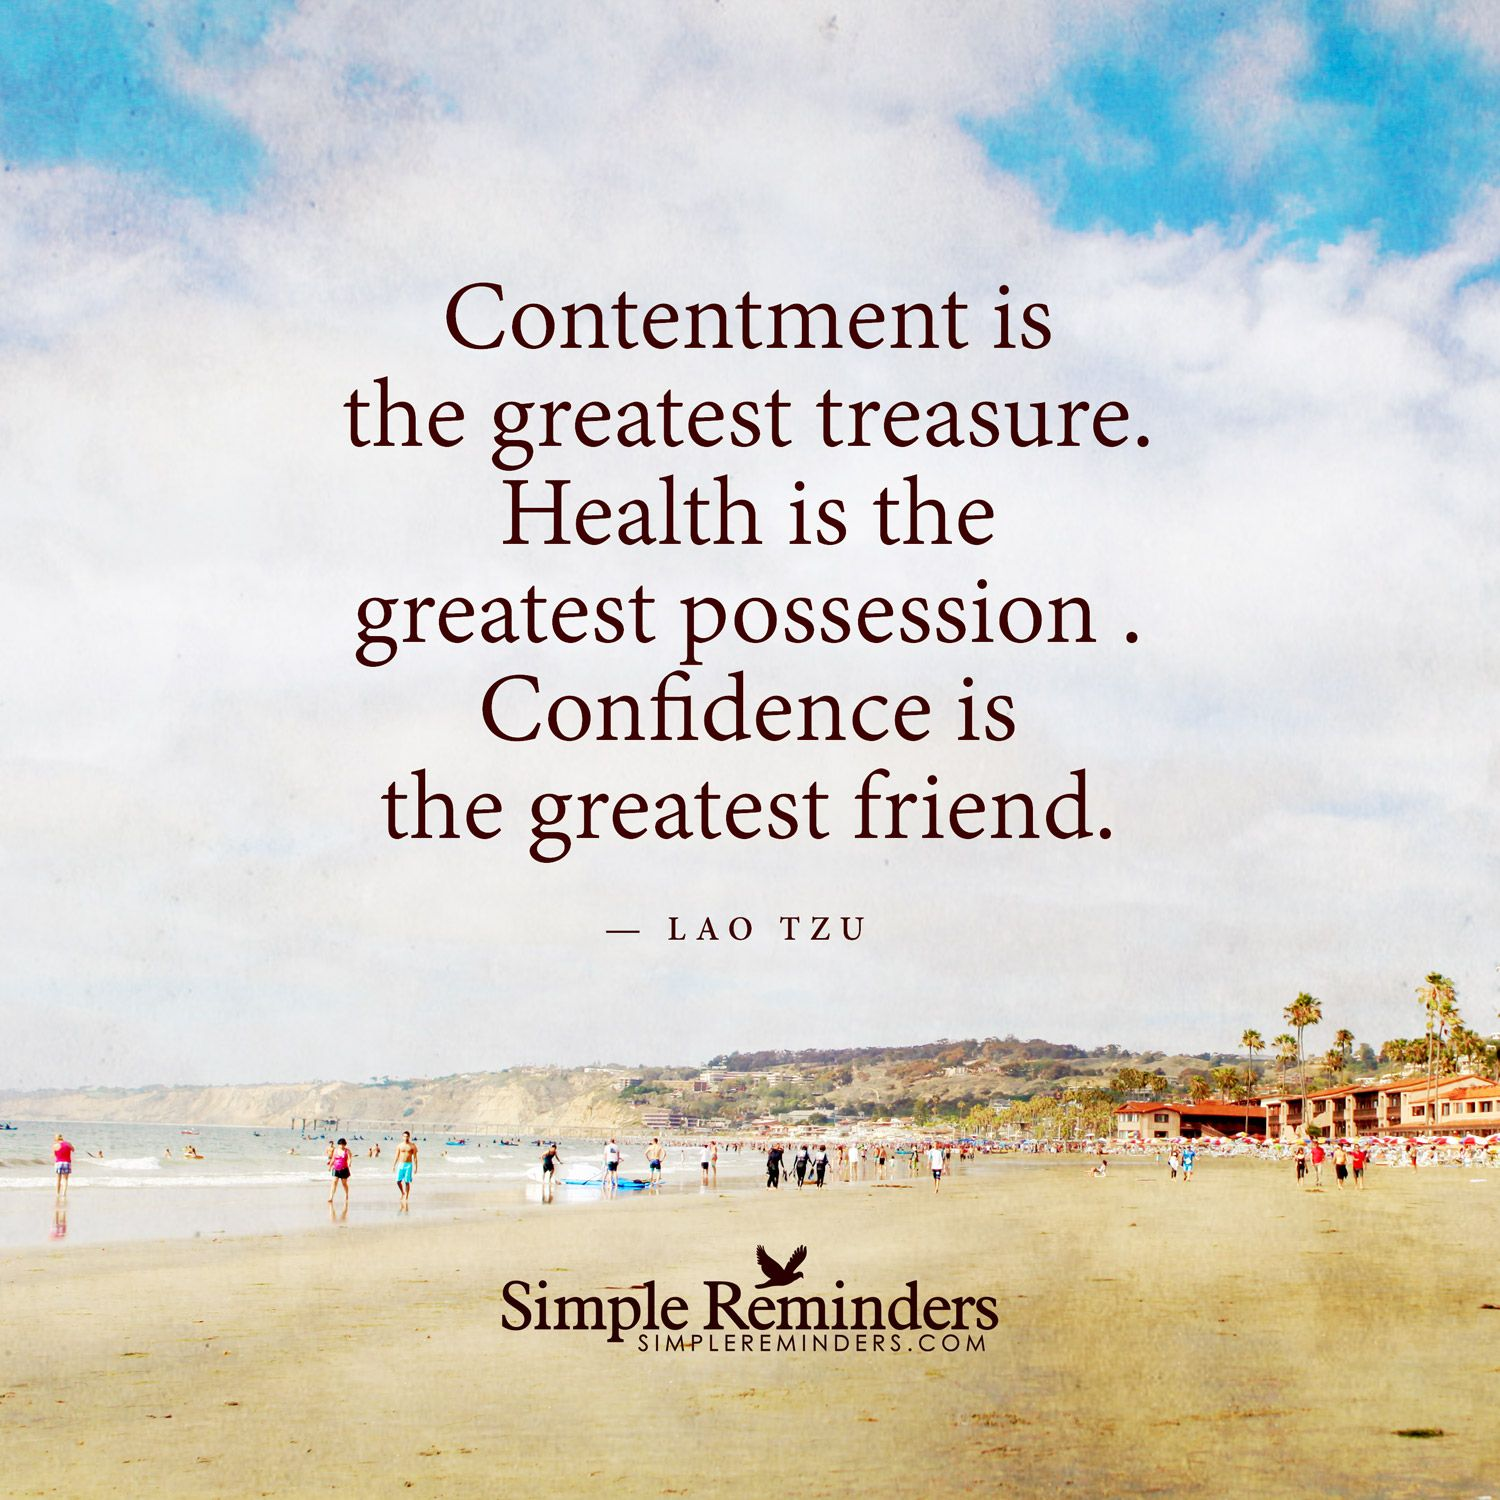 Lao Tzu Quotes Life Contentment Is The Greatest Treasure Contentment Is The Greatest